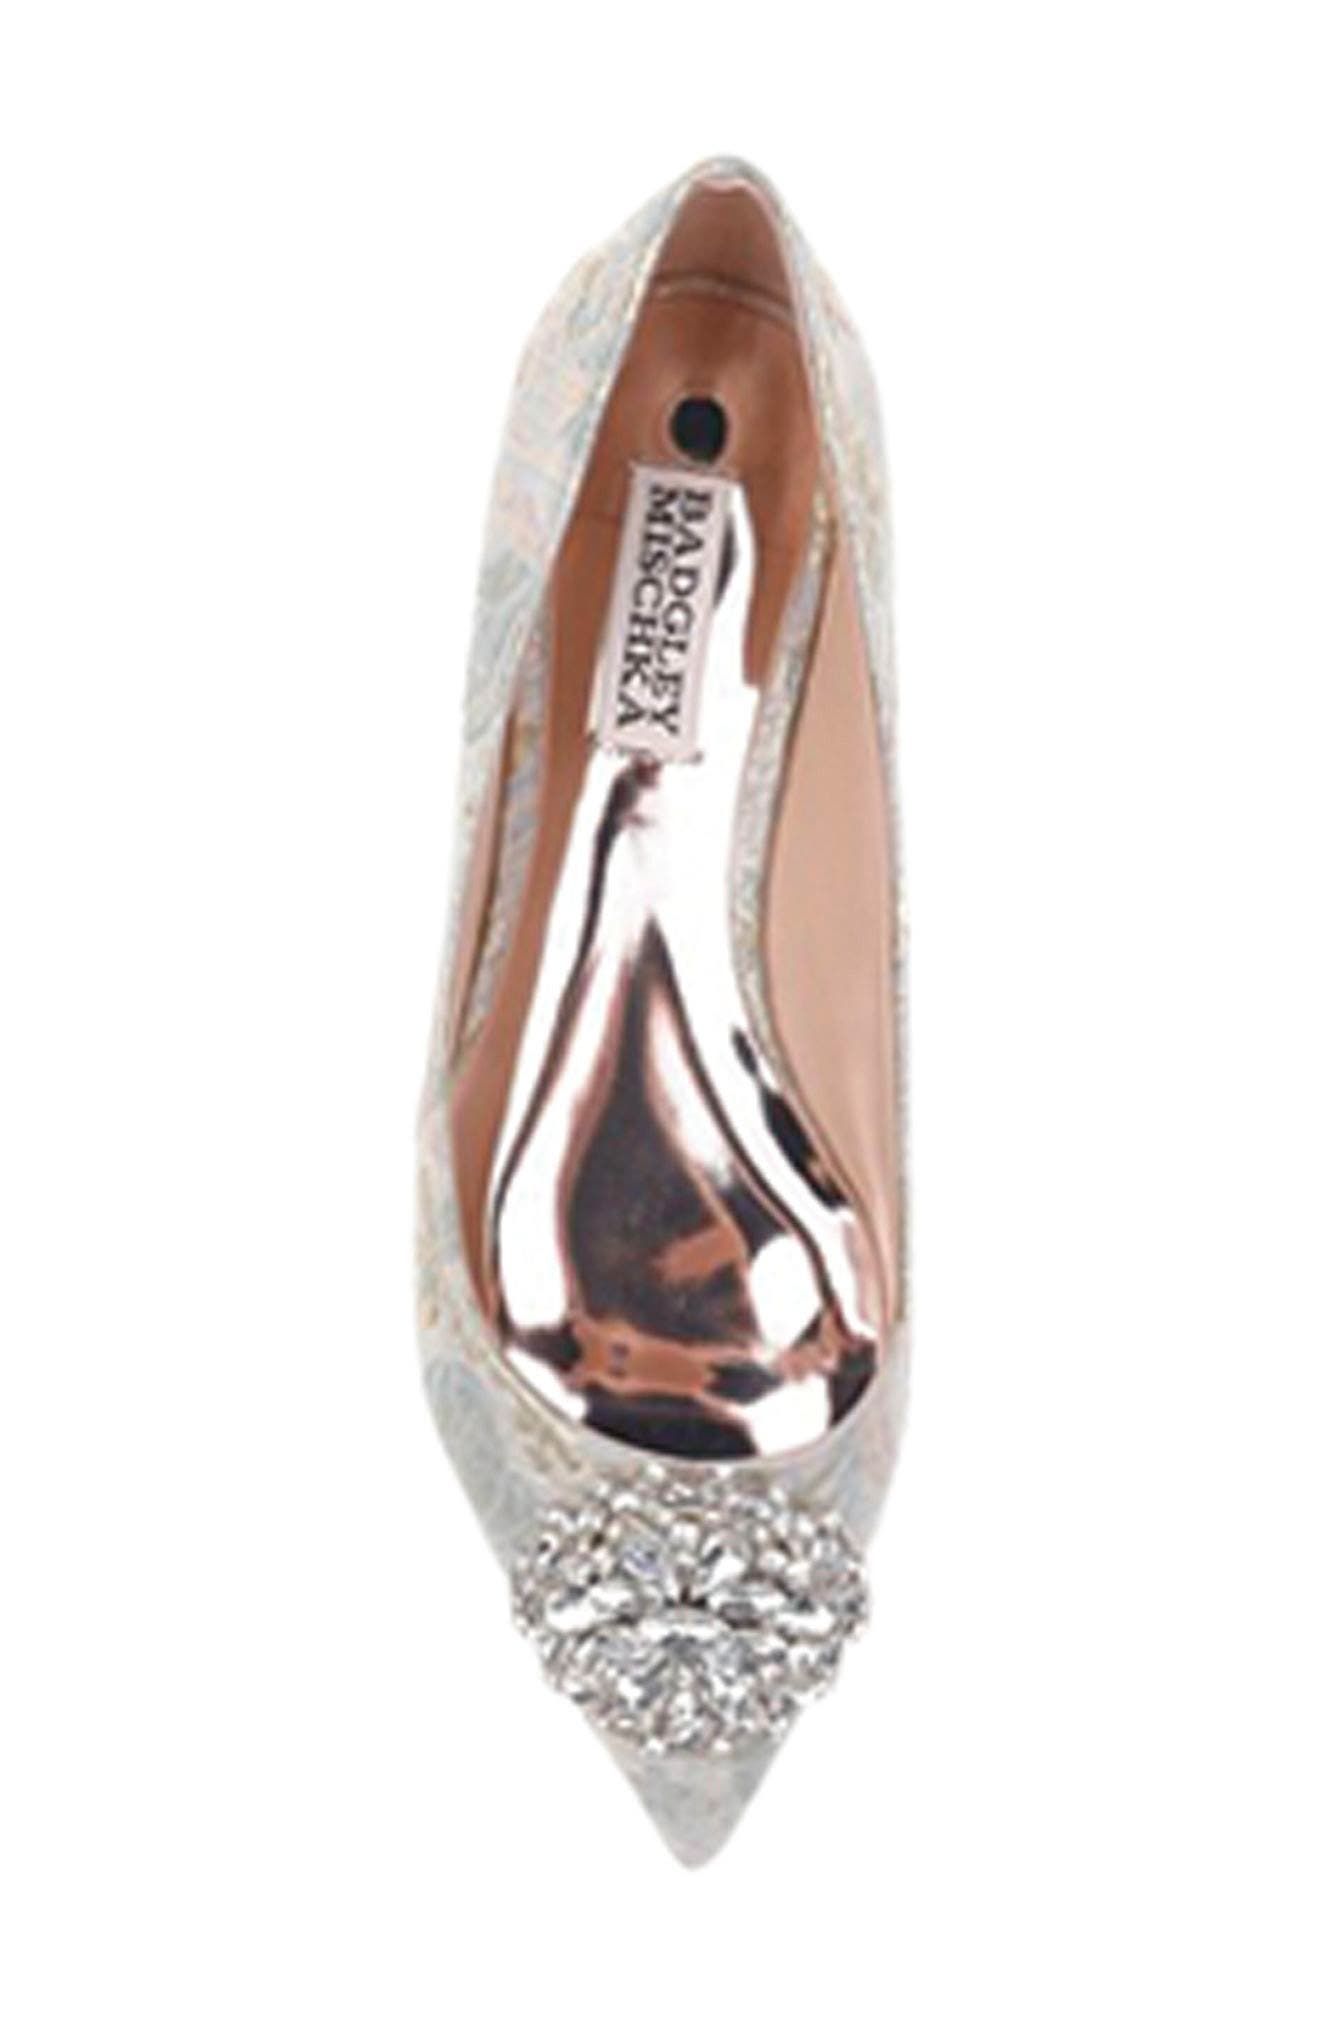 BADGLEY MISCHKA COLLECTION,                             Badgley Mischka 'Davis' Crystal Embellished Pointy Toe Flat,                             Alternate thumbnail 7, color,                             316